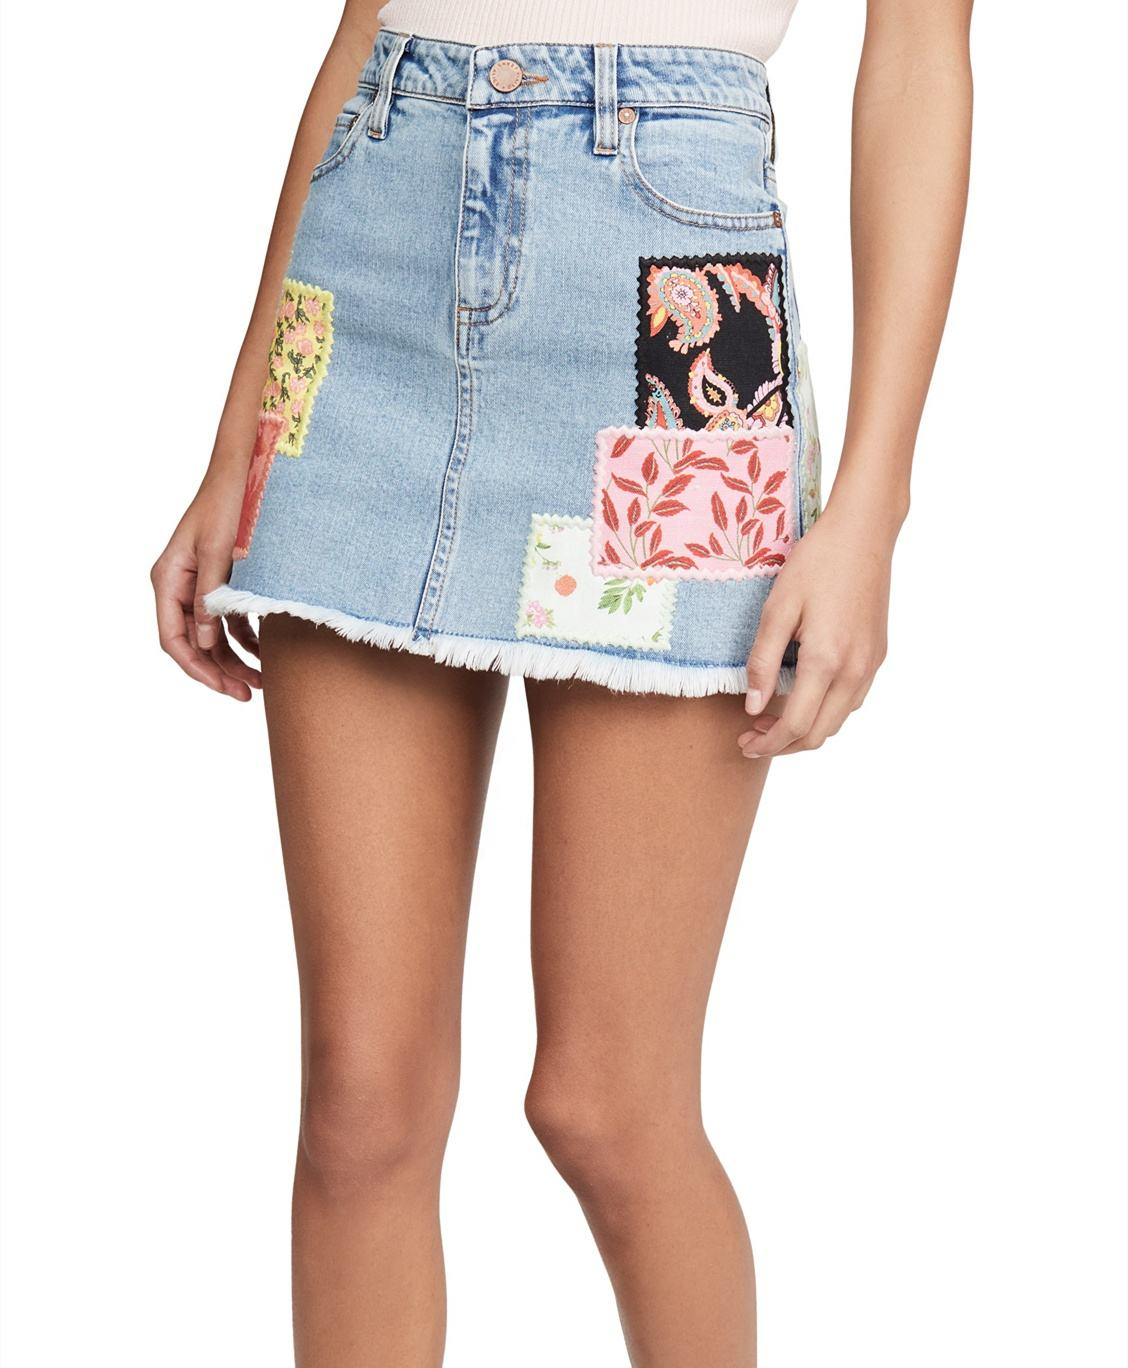 Factory custom casual embroidered appliques jeans women denim mini shorts skirt STE-070